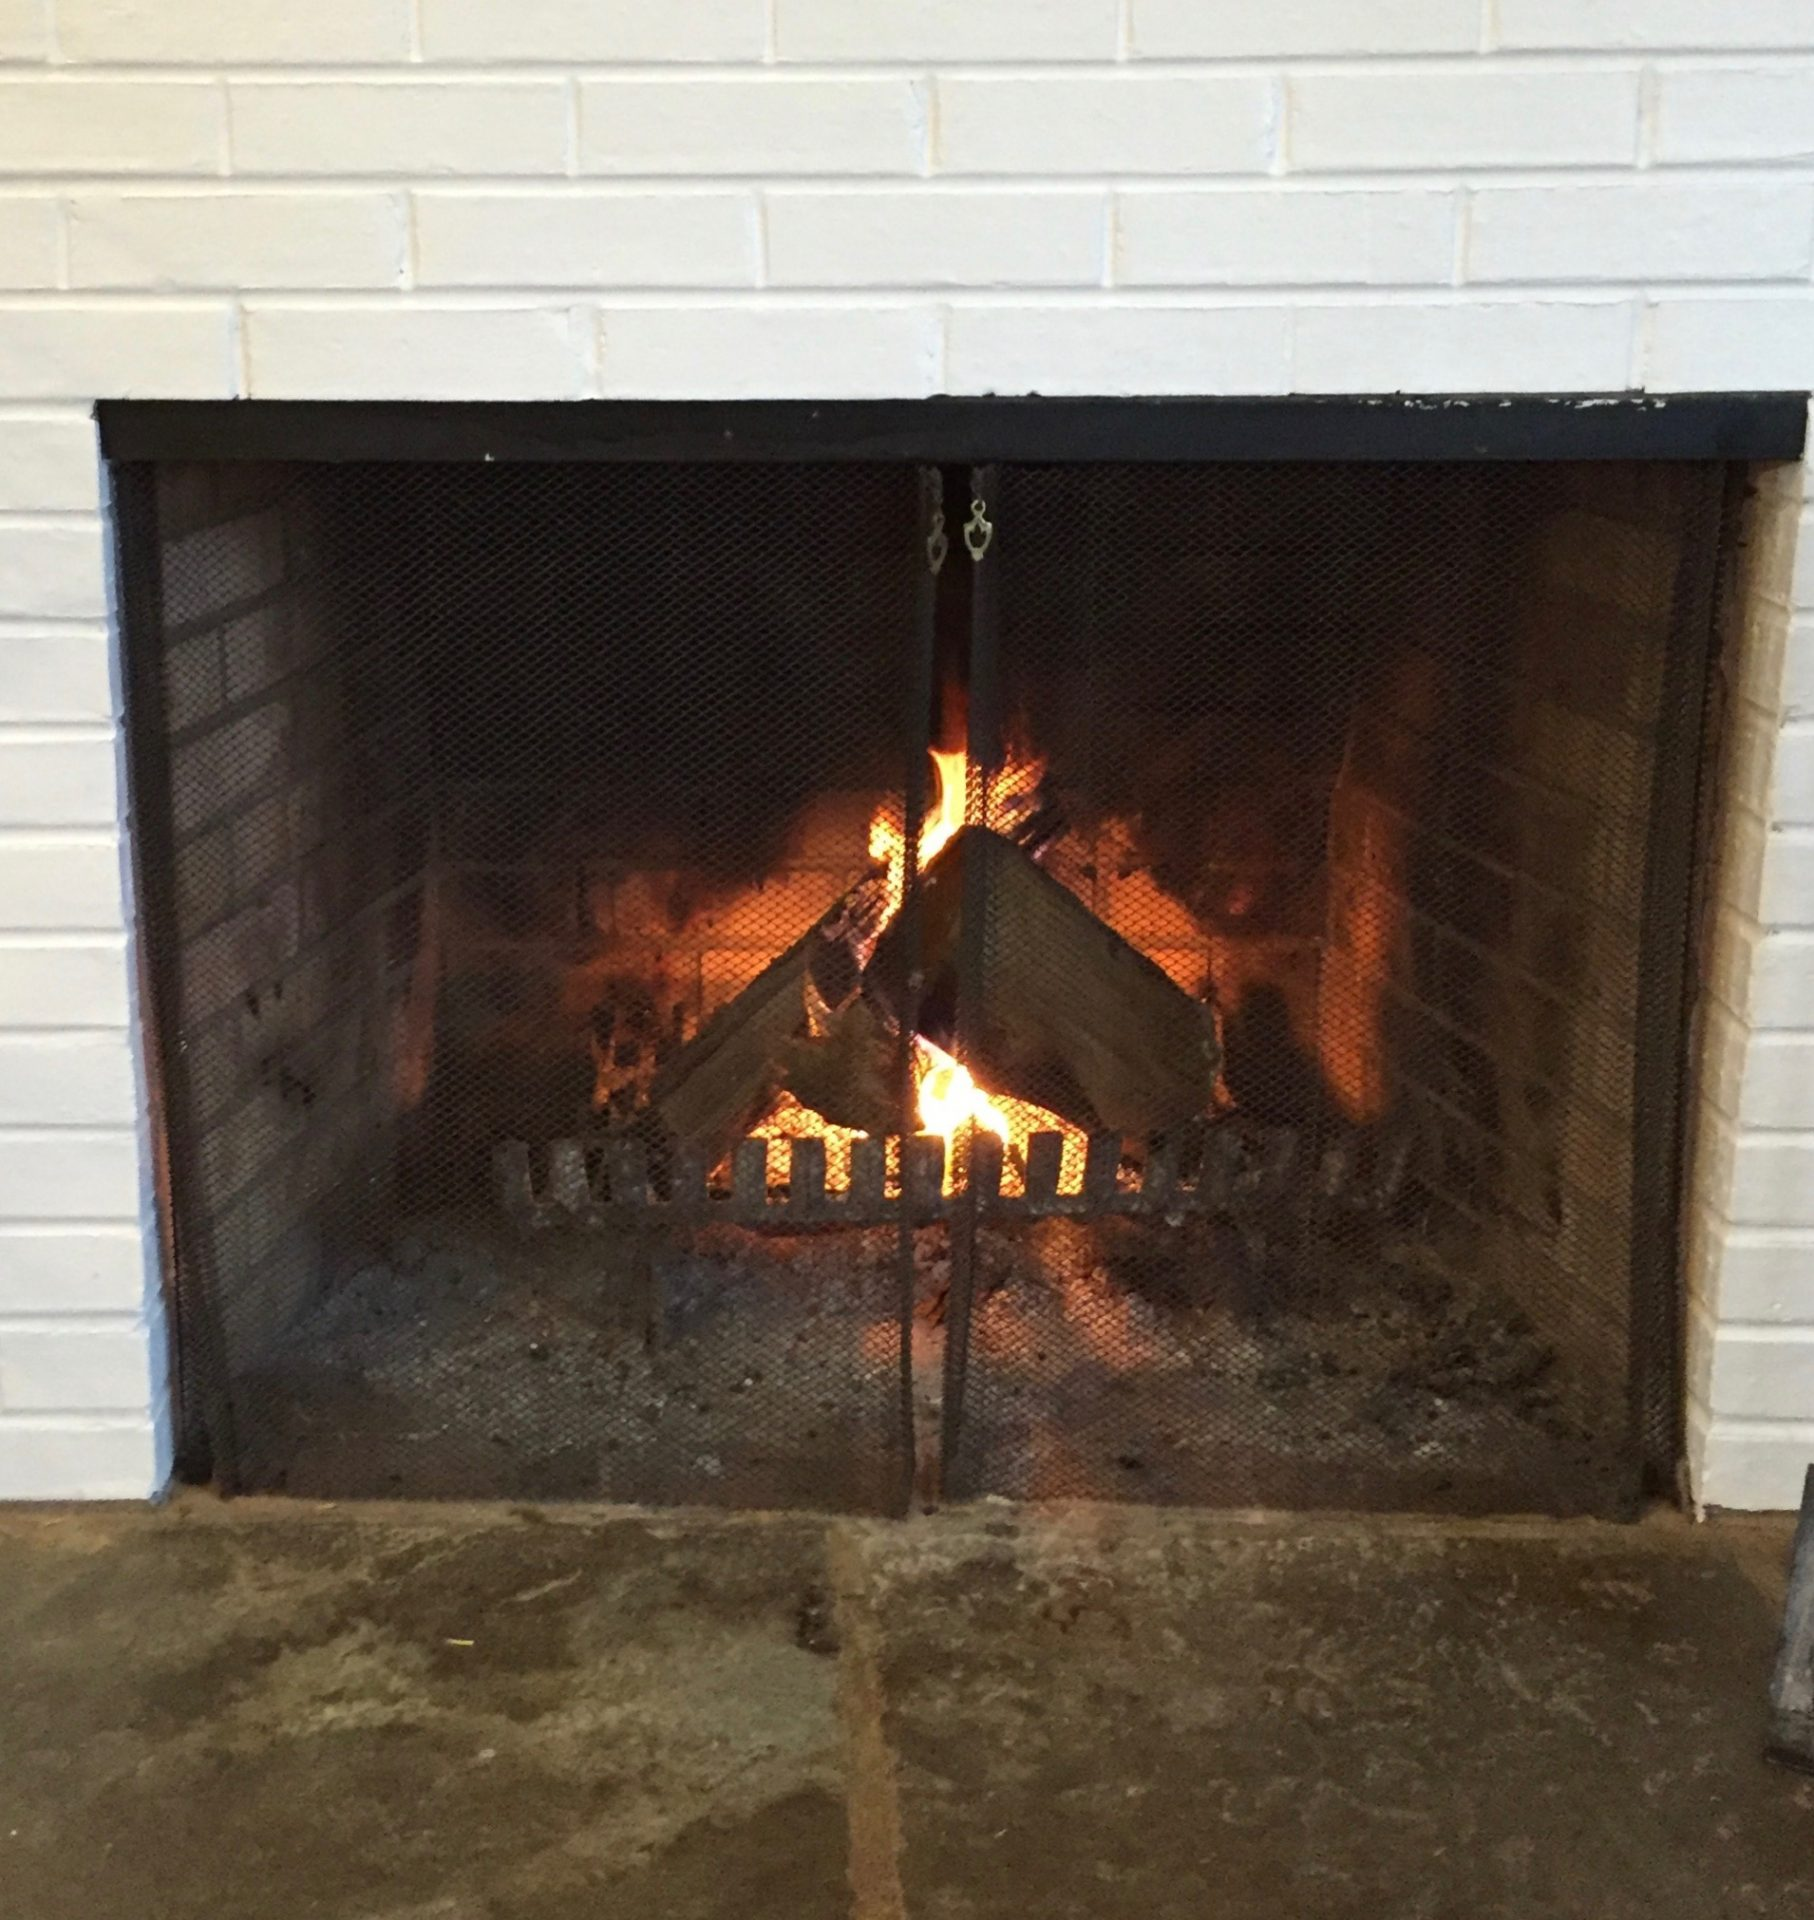 Best practices for wood burning to reduce air pollution